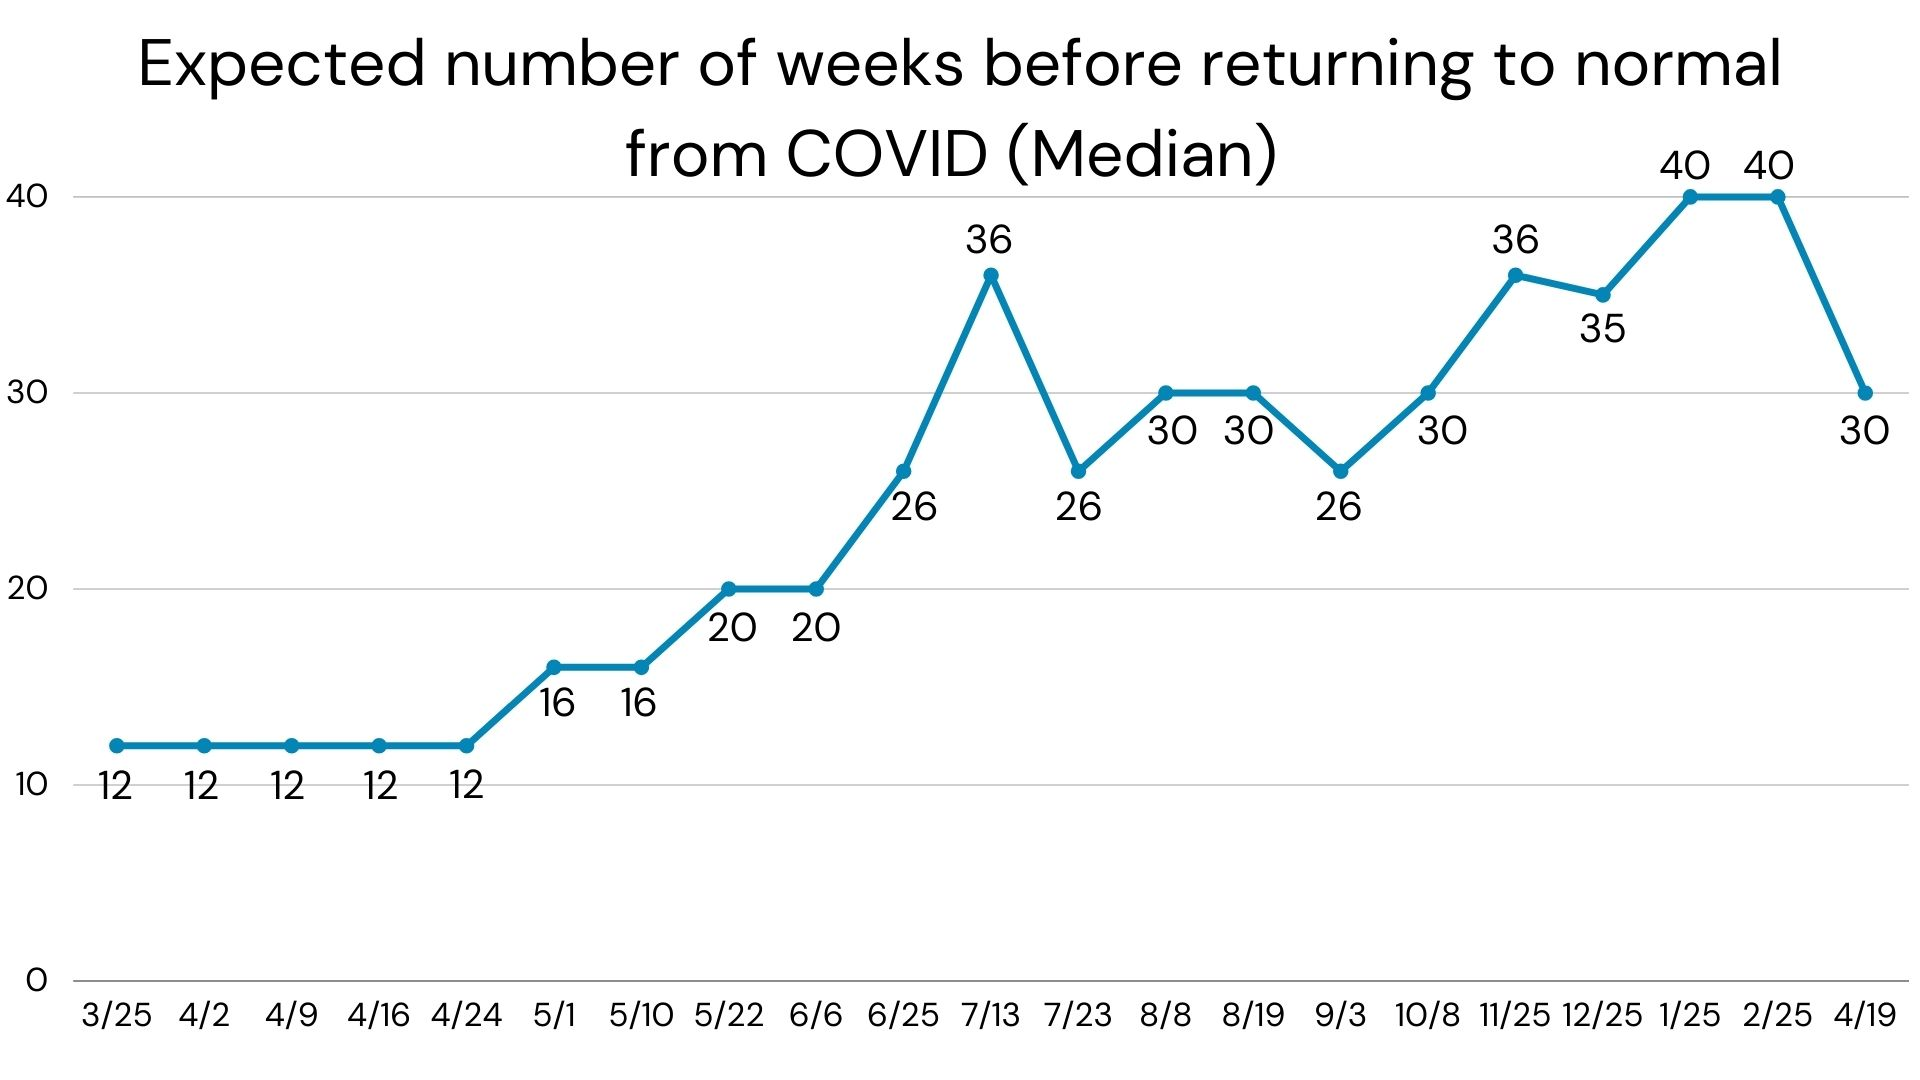 COVID expected number of weeks before normal